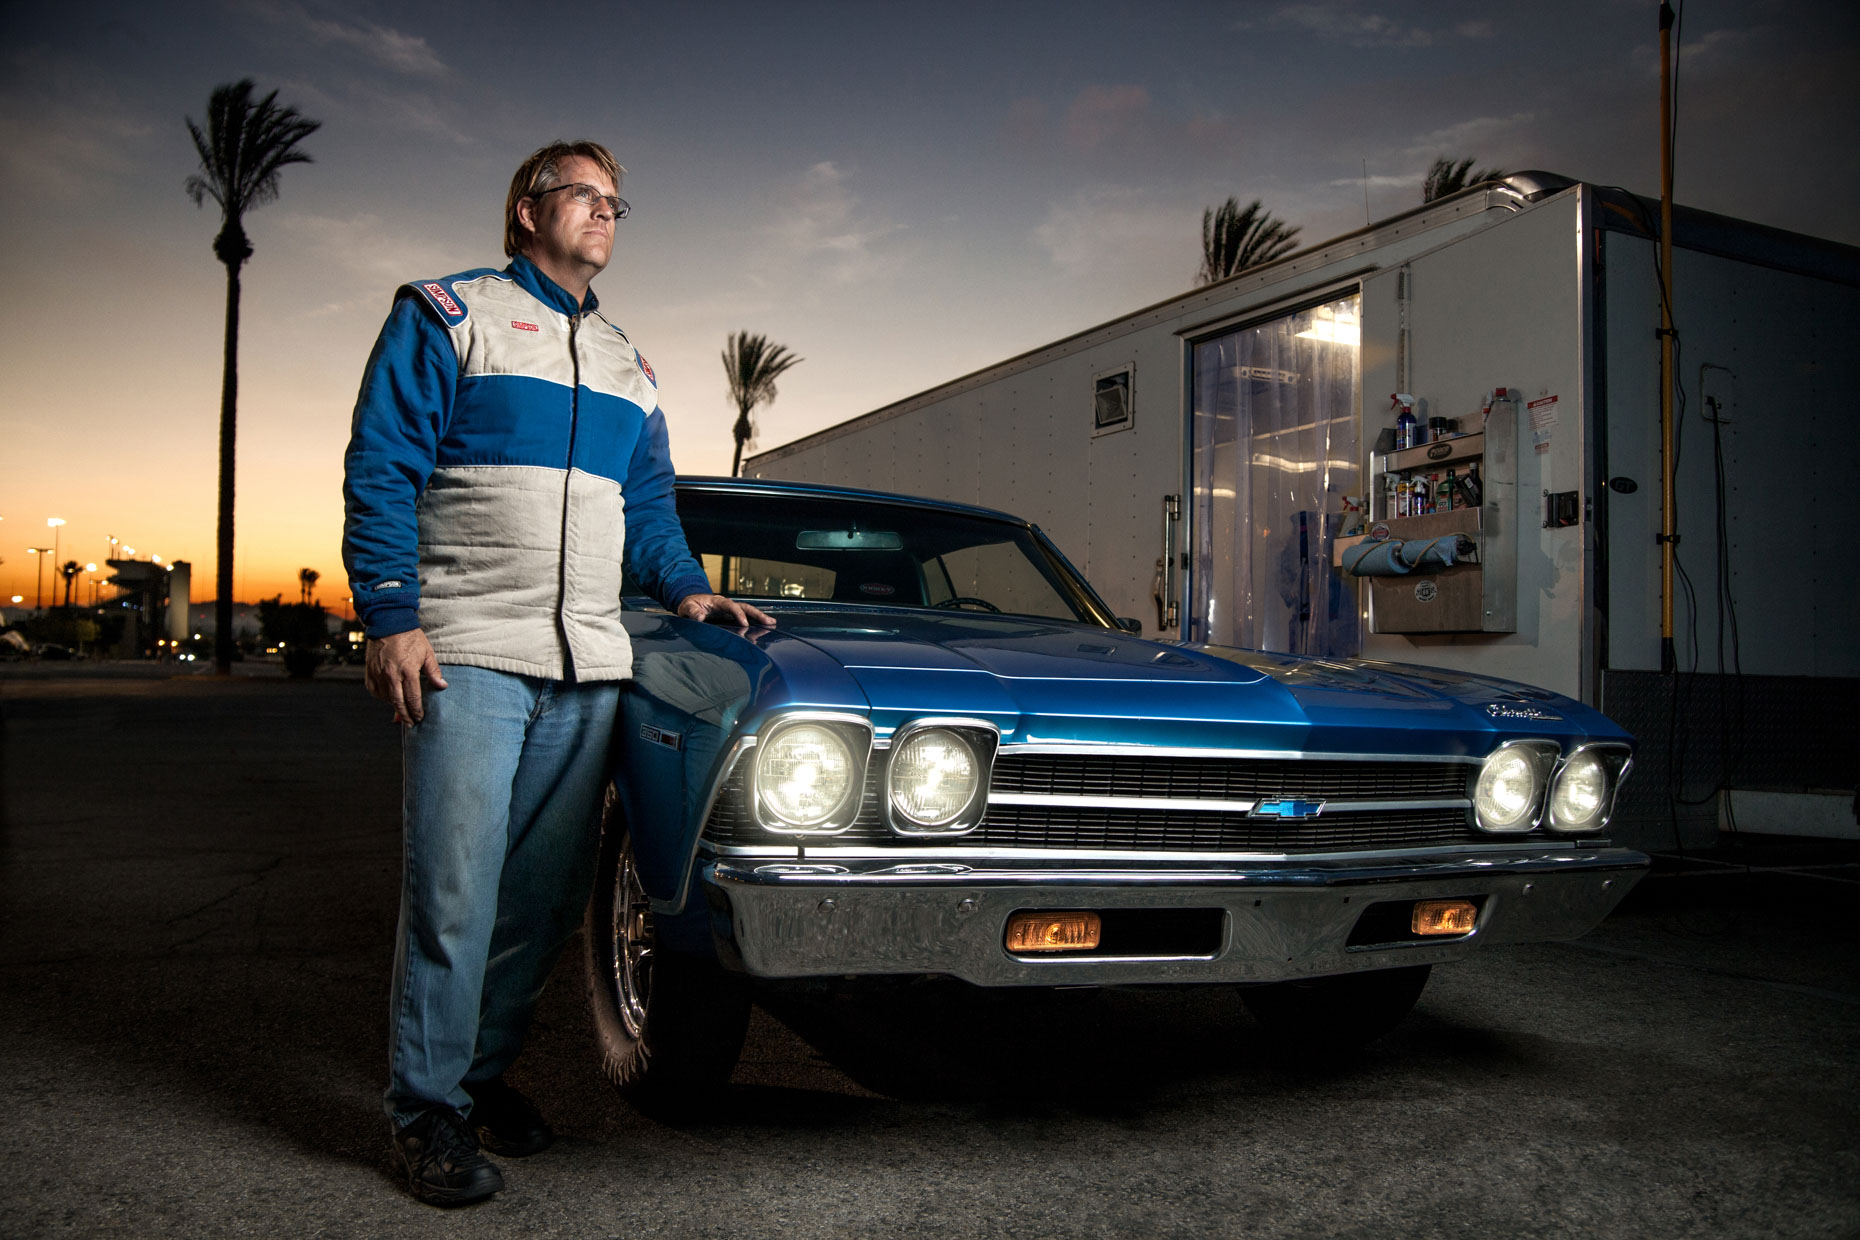 portrait-of-man-at-local-racetrack-with-his-chevelle